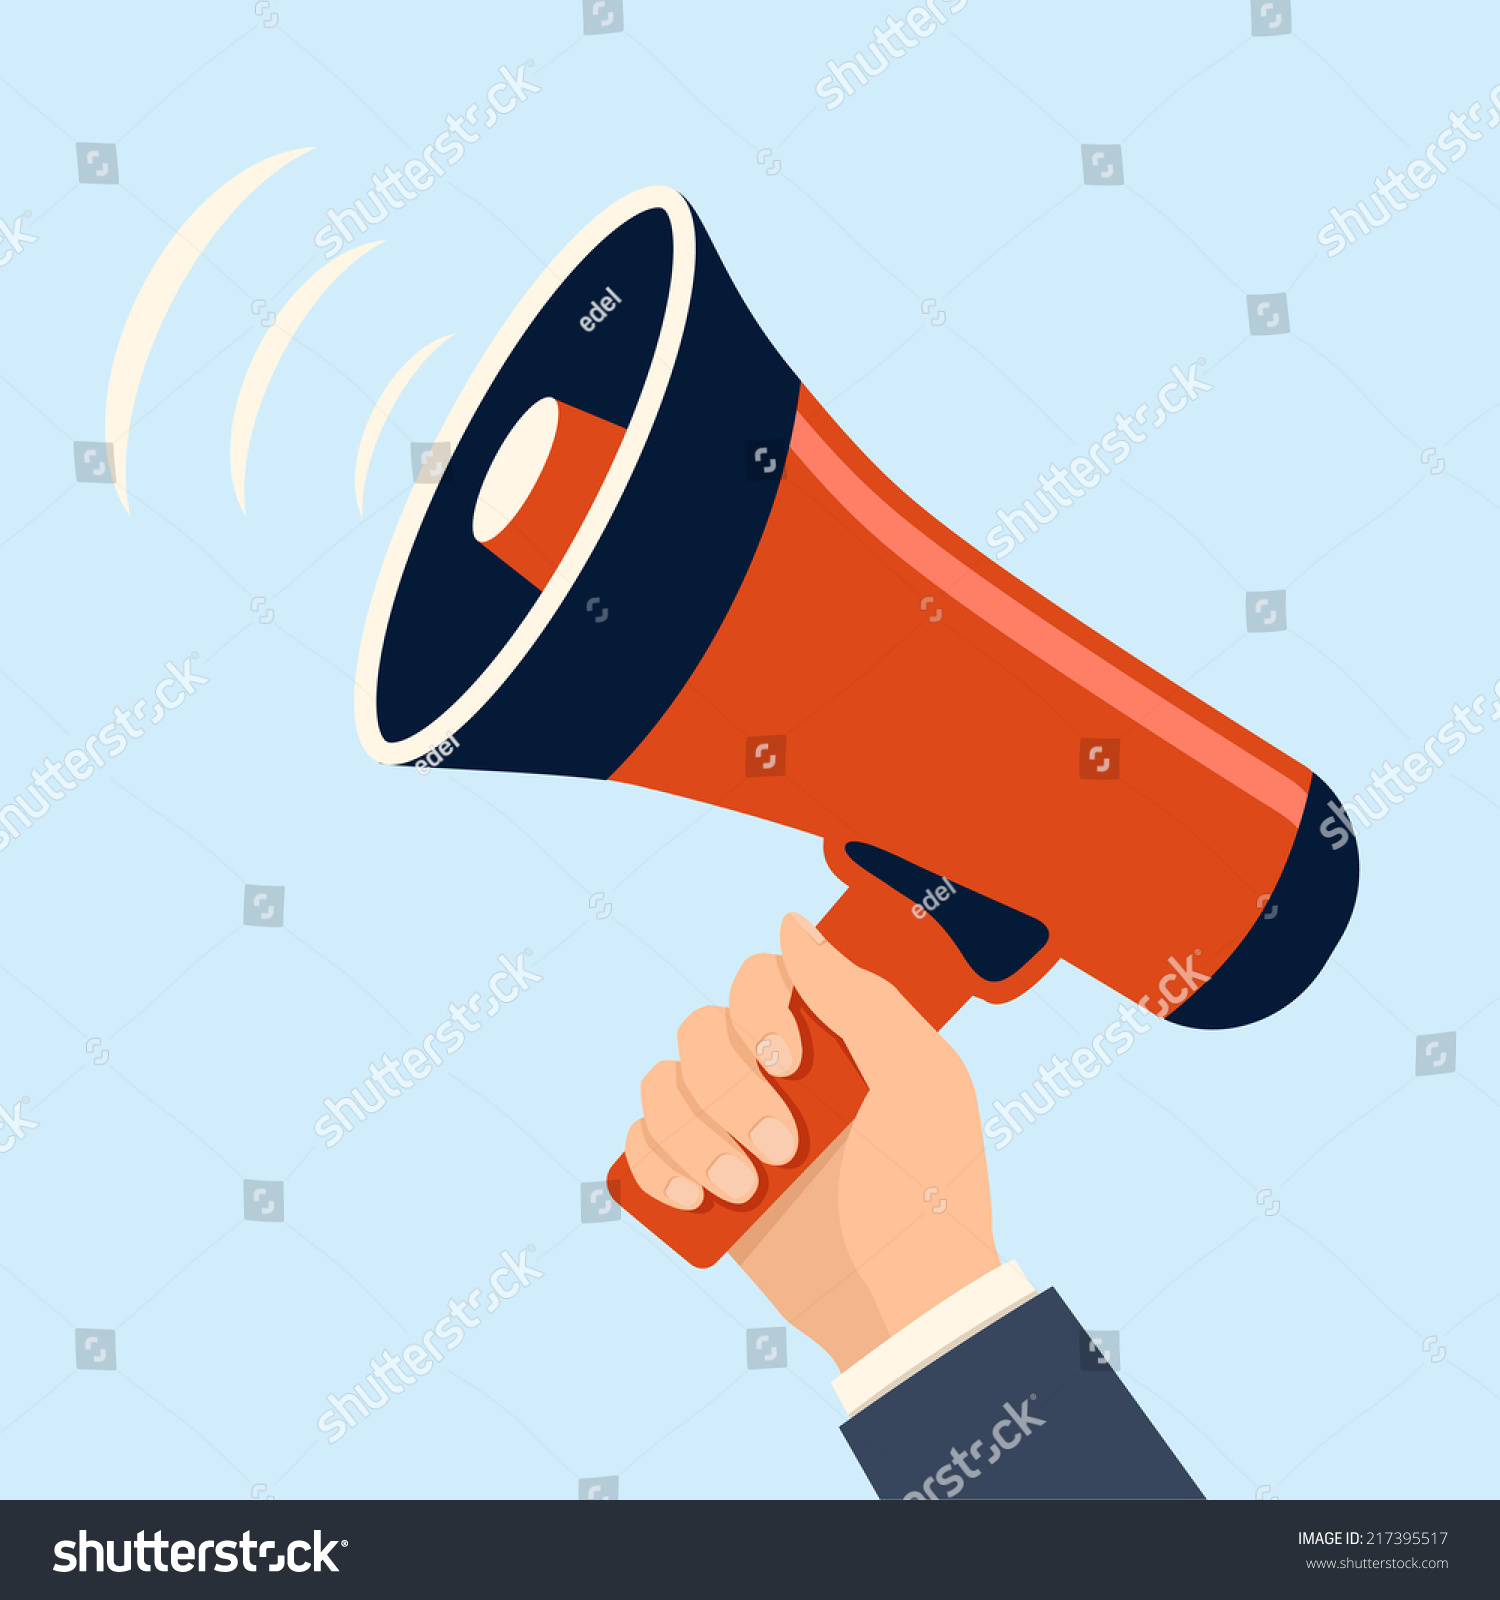 hand holding megaphone loudspeaker icon flat stock vector royalty free 217395517 https www shutterstock com image vector hand holding megaphone loudspeaker icon flat 217395517